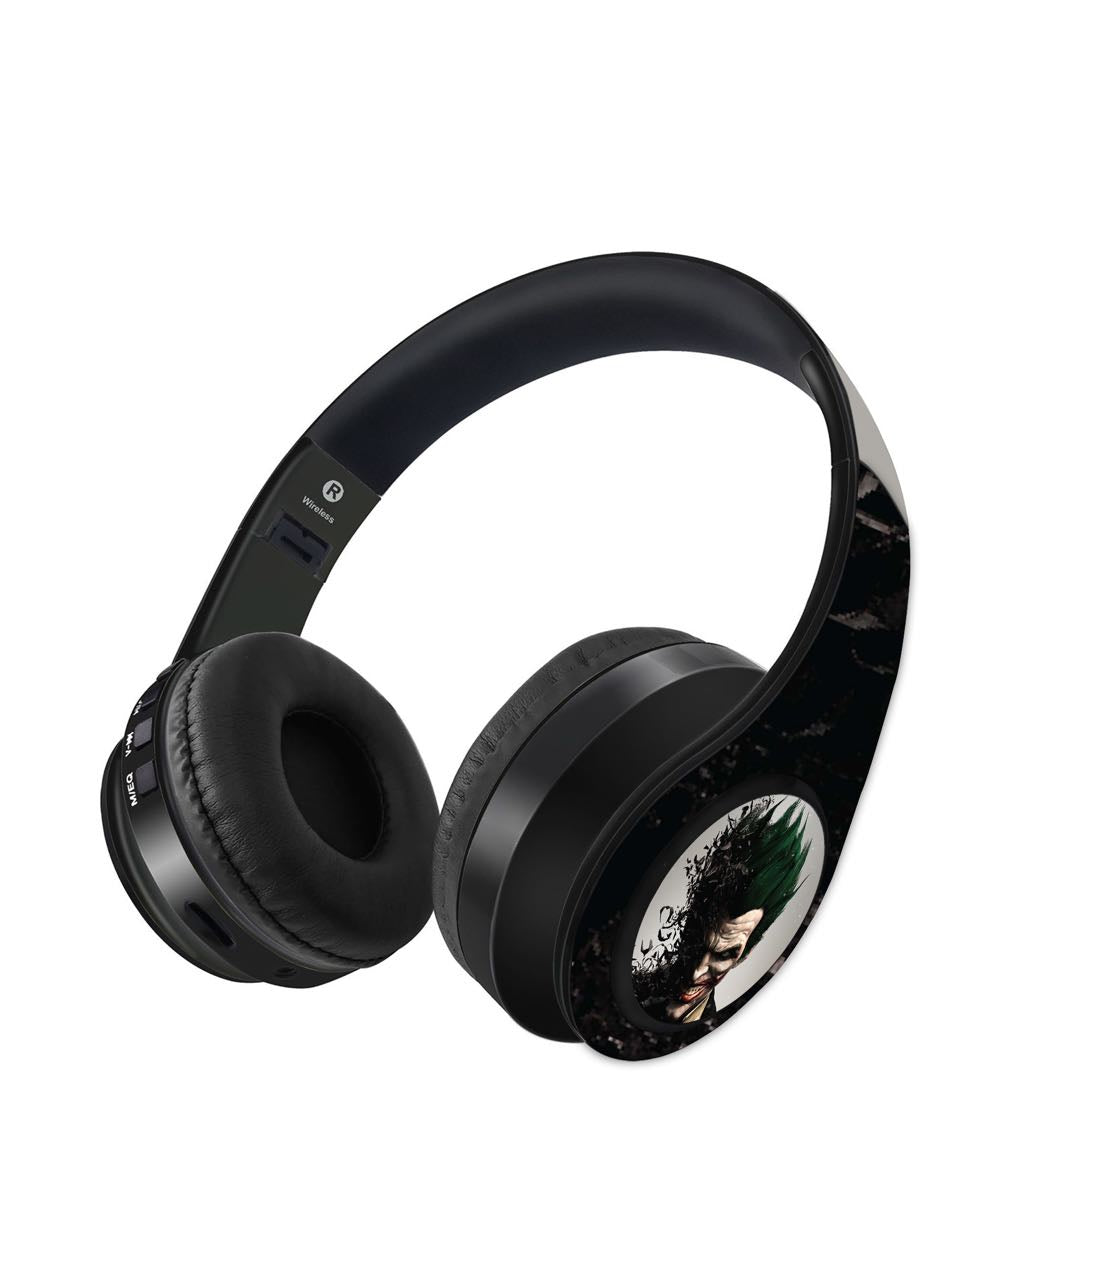 Joker Withers - Decibel Wireless On Ear Headphones -Macmerise - India - www.superherotoystore.com